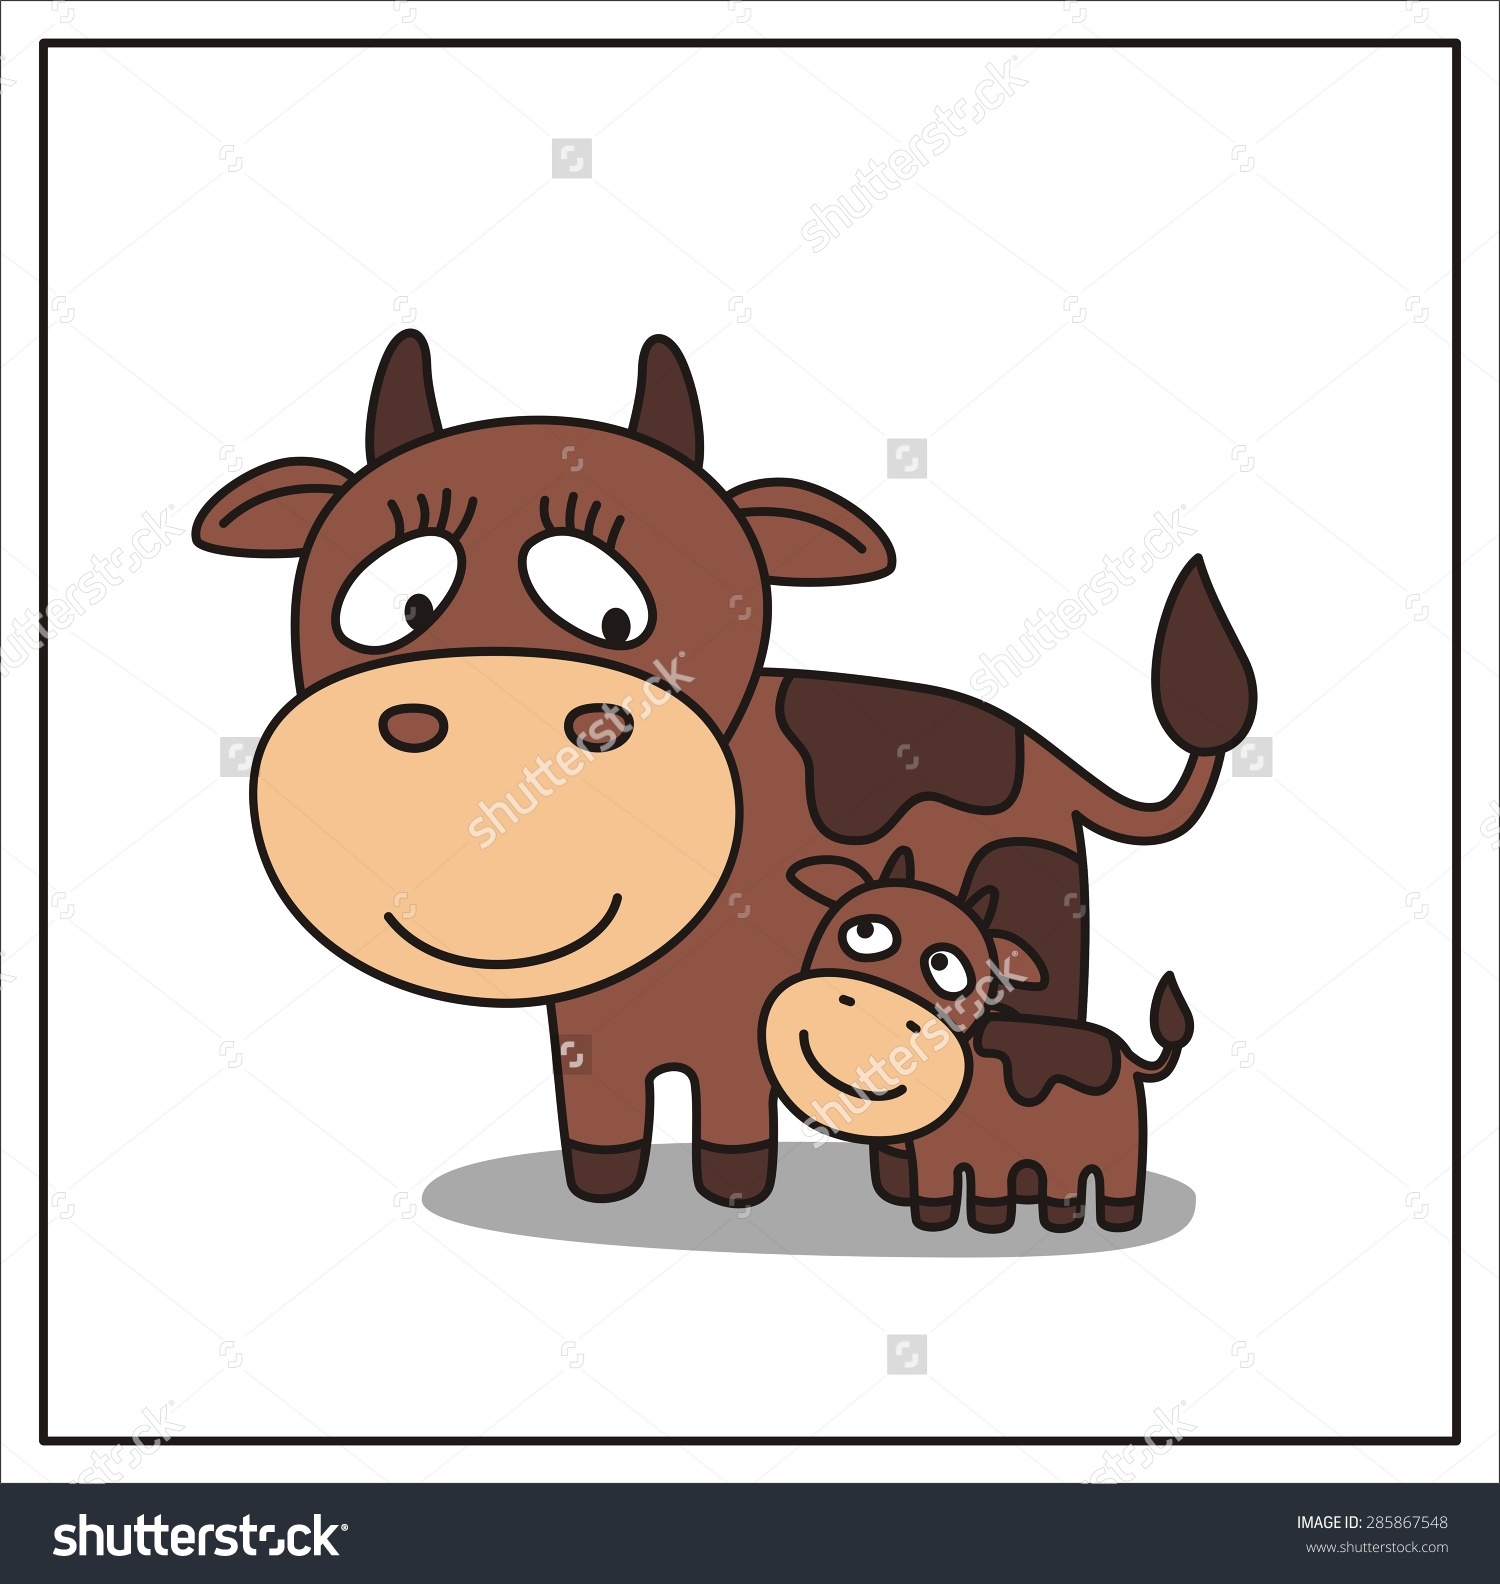 Mom cat and her calf clipart - Clipground for Cow And Calf Clipart  111bof